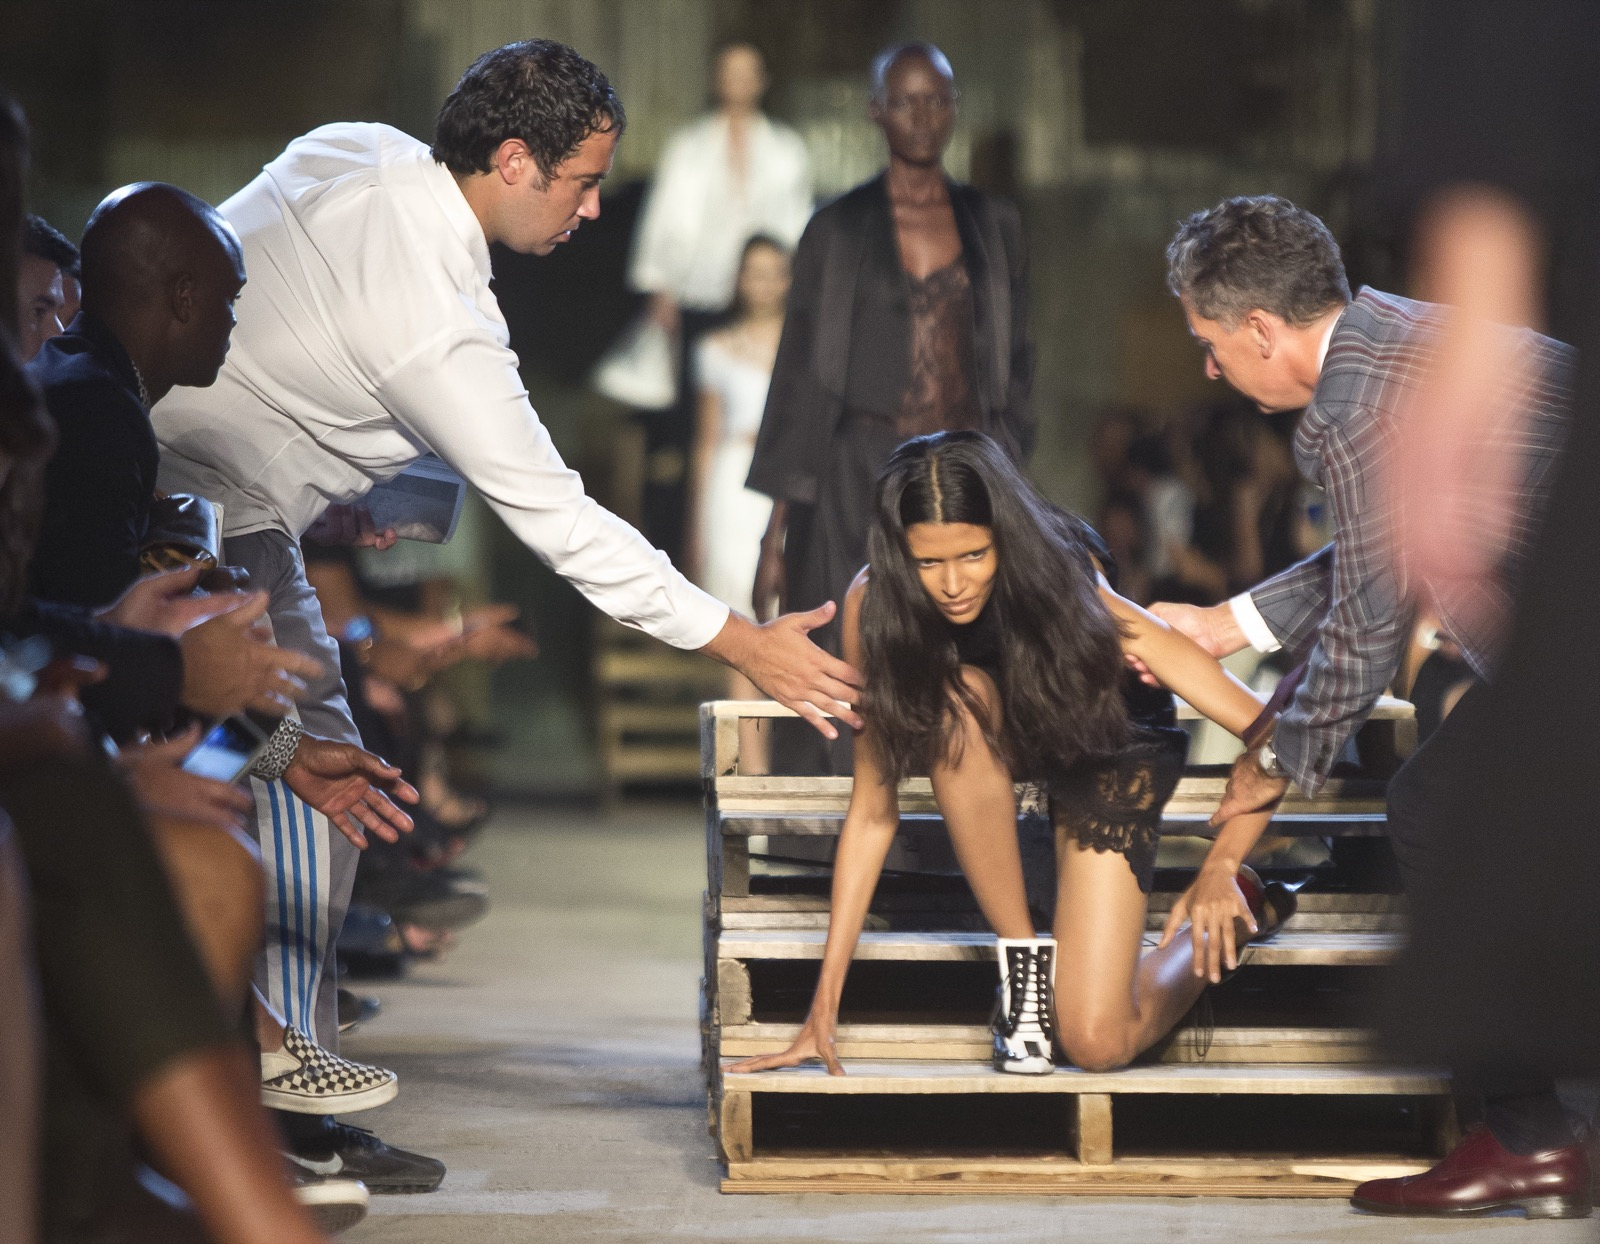 A model falls and gets help back to her feet during the fashion show for the Givenchy Spring 2016 collection. AP Photo/Bebeto Matthews